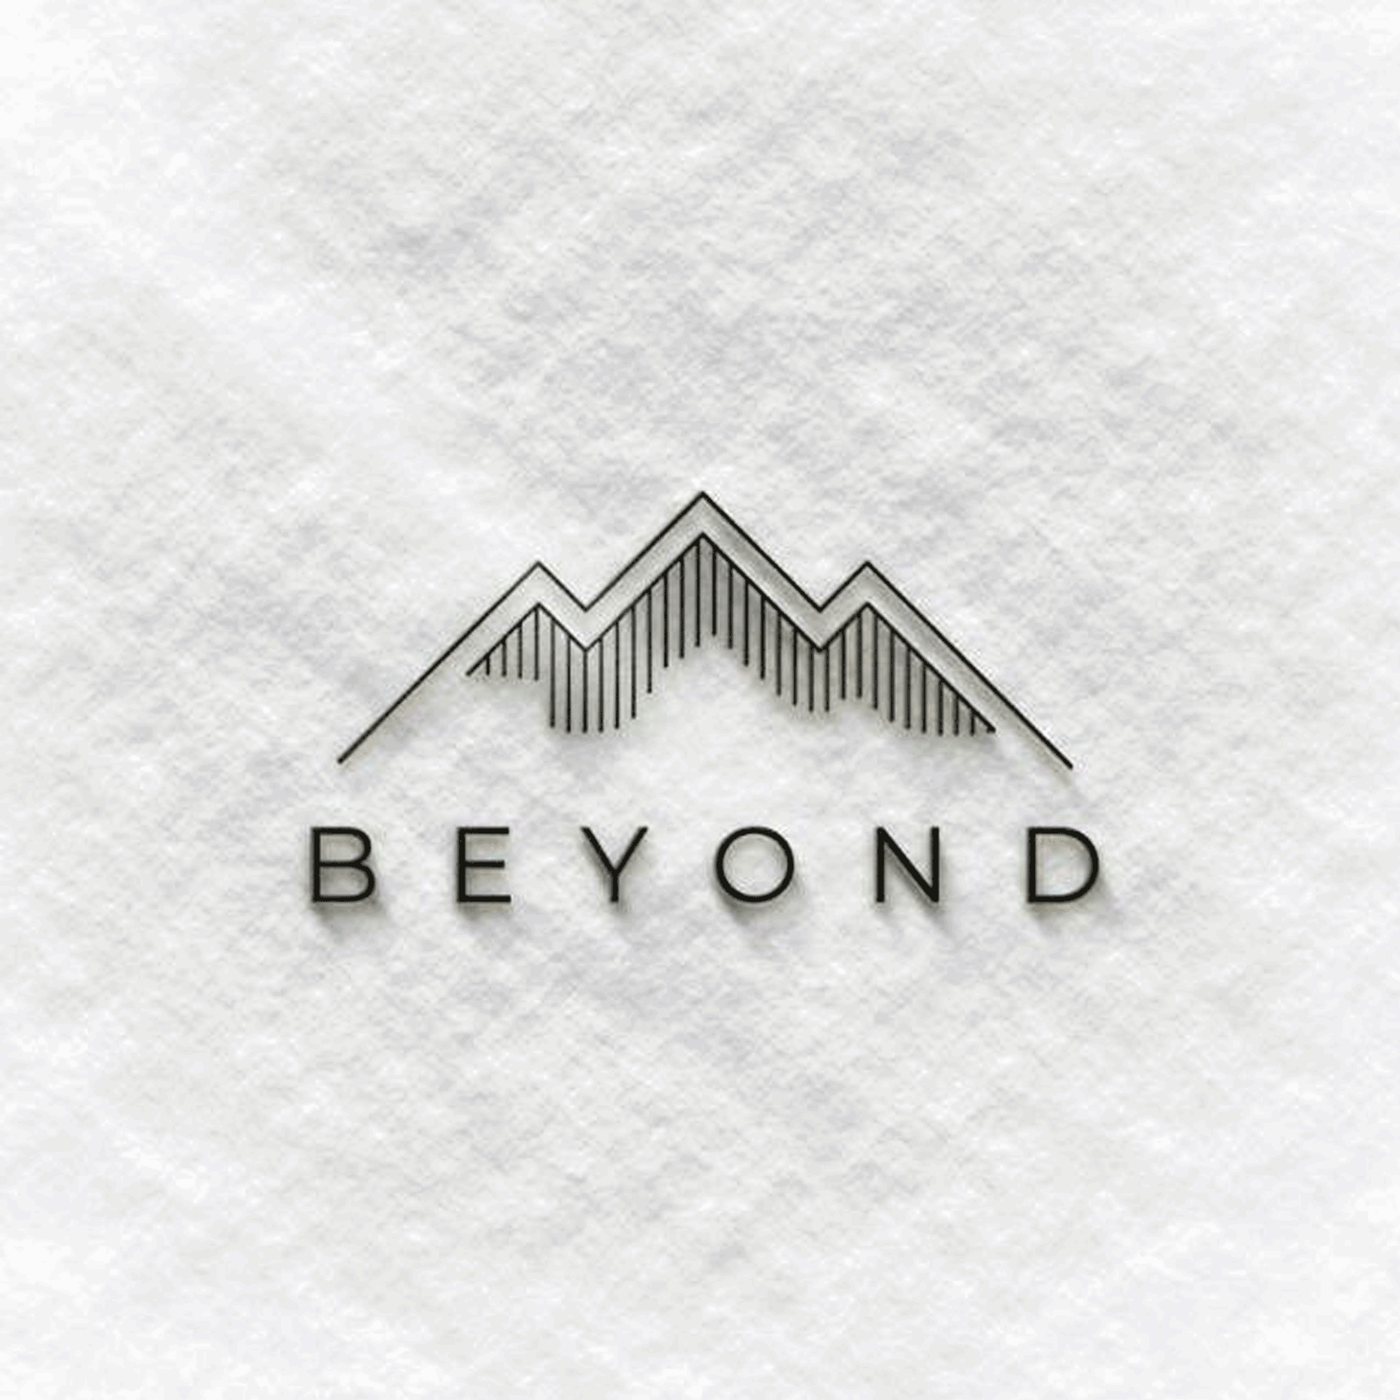 Beyond Church